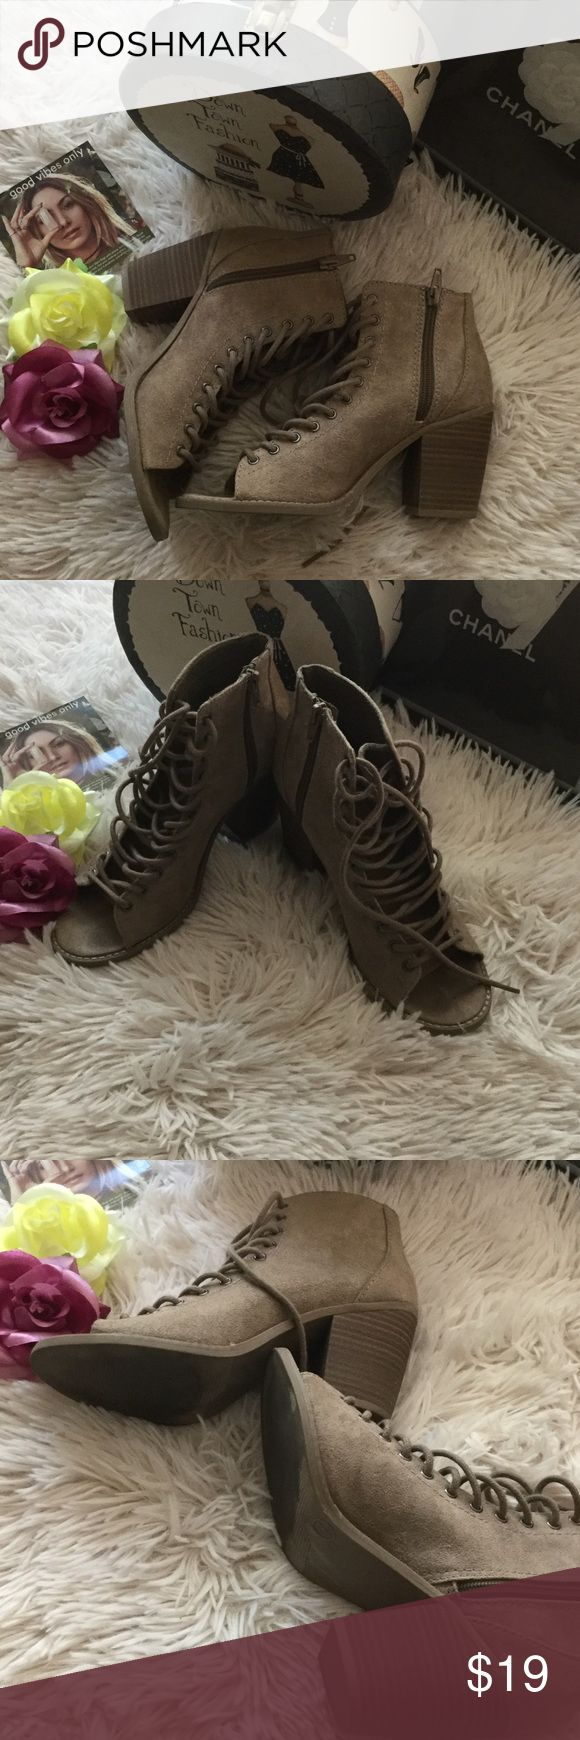 💋Mossimo supply co shoes 💋 💋 Great condition 💋 Mossimo Supply Co Shoes Ankle Boots & Booties